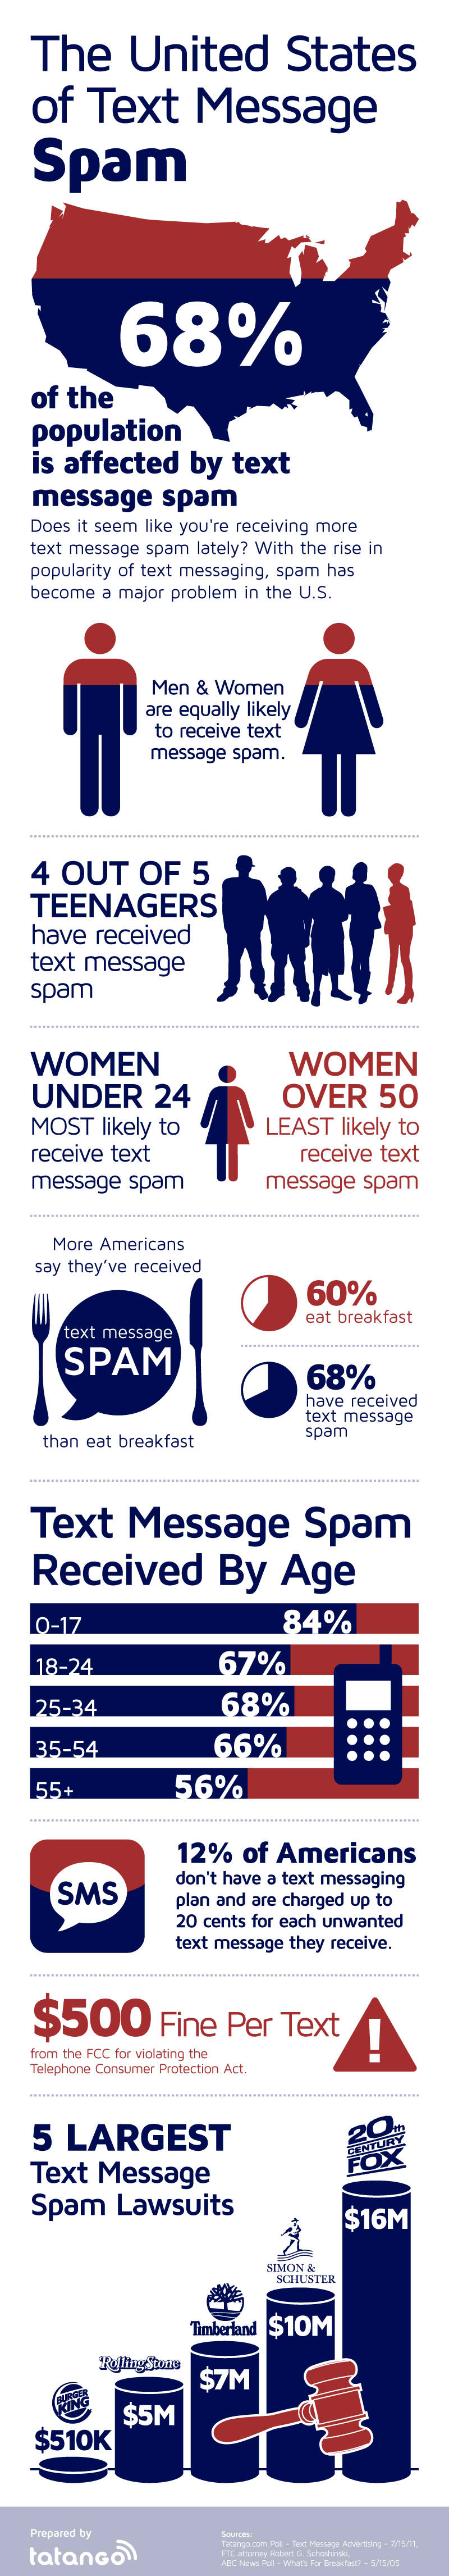 Mobile Spamming Menace in the U.S.